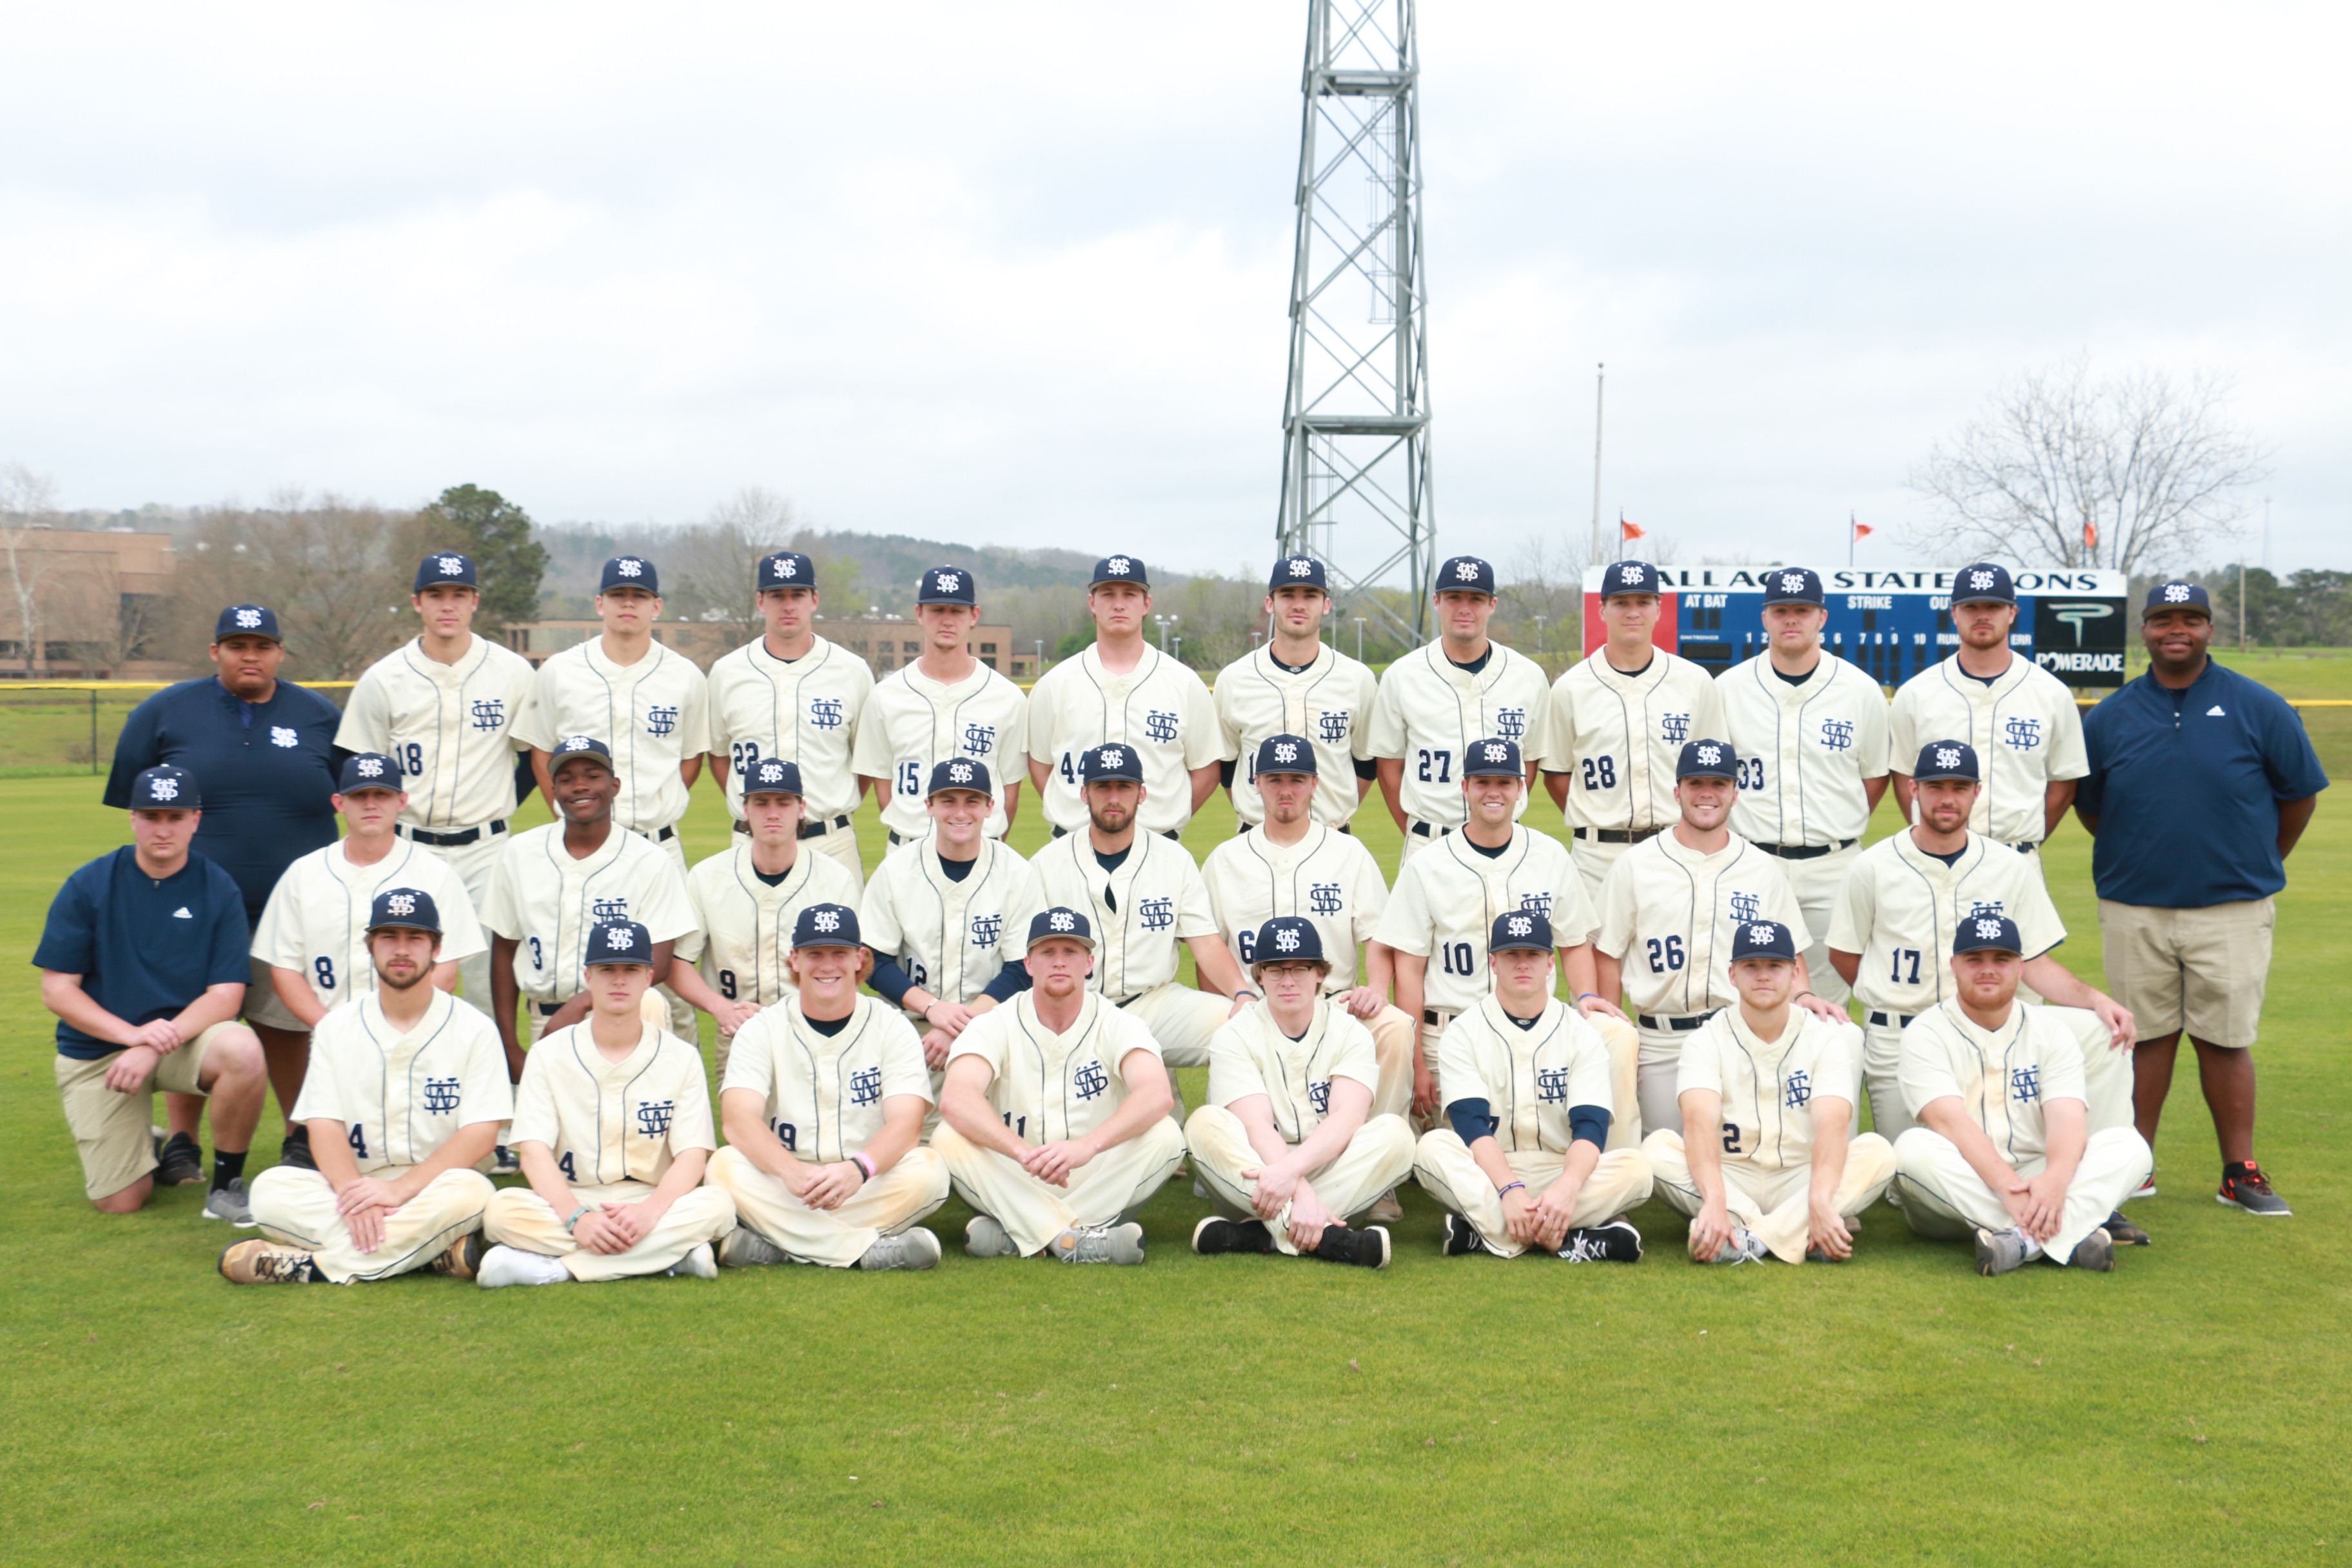 wallace-state-baseball-team.jpg